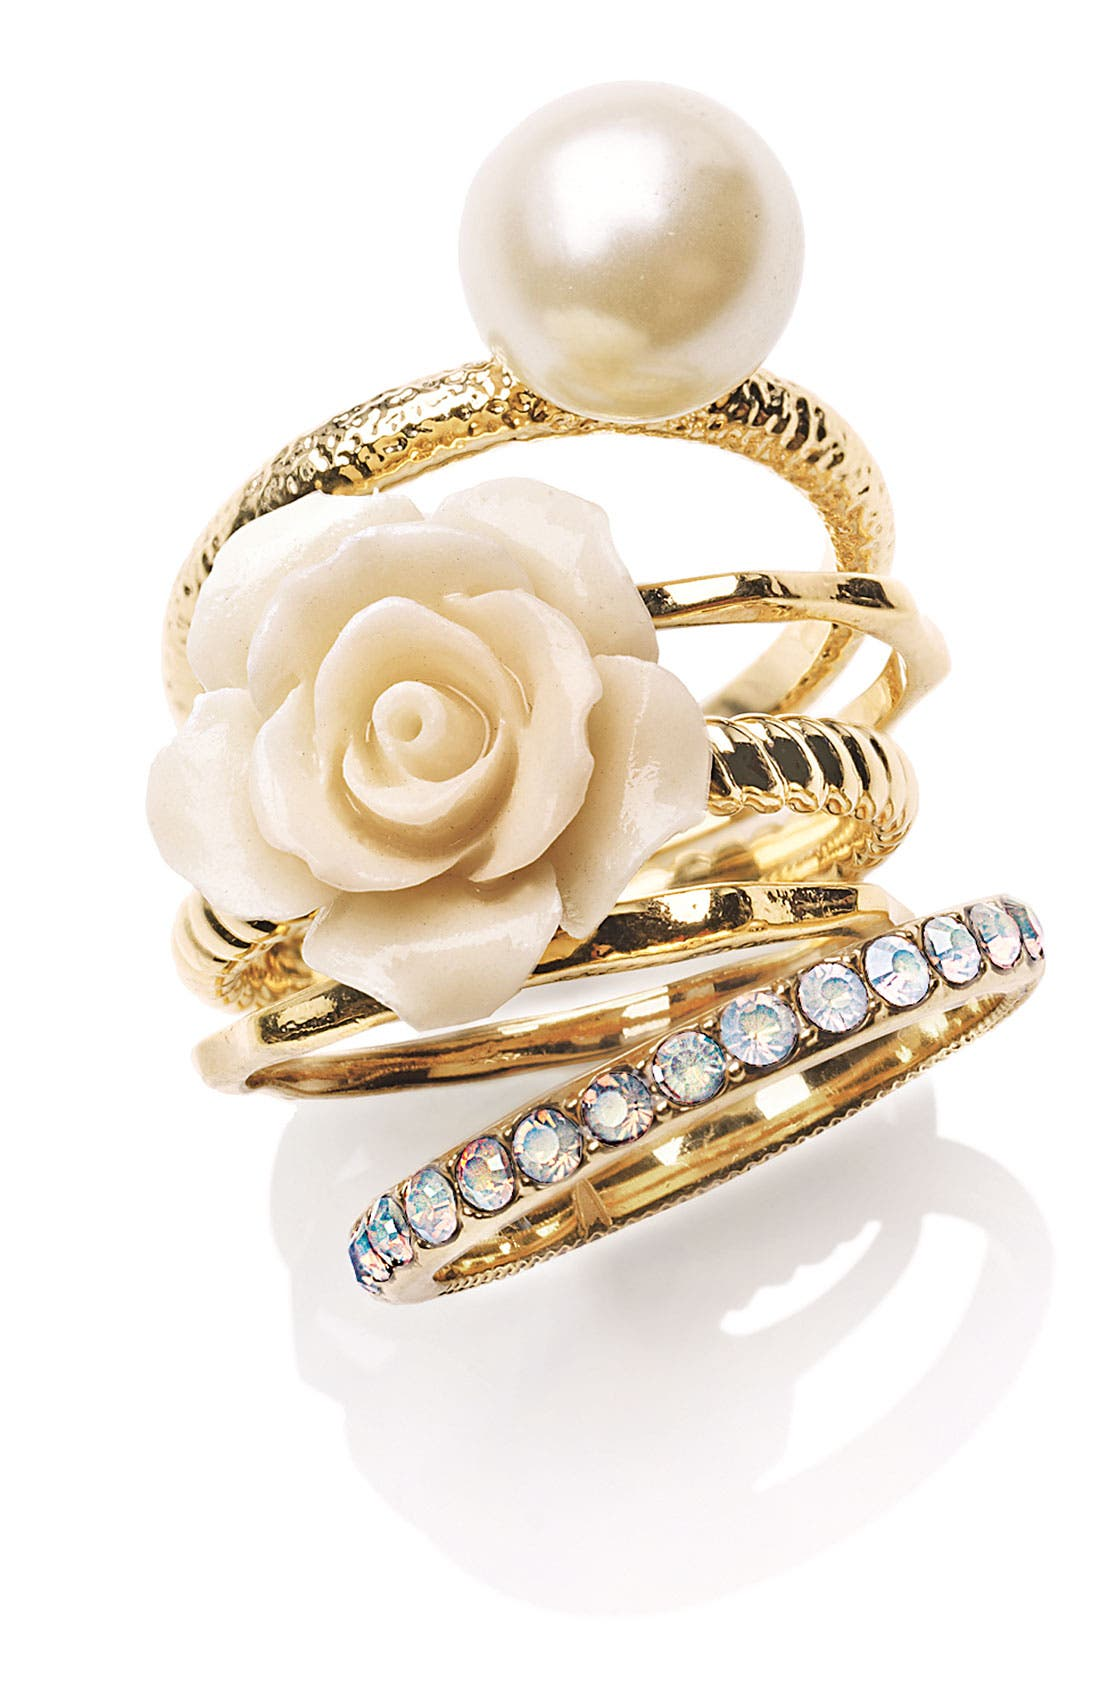 Main Image - Ariella Collection Flower & Faux Pearl Stack Rings (Set of 5) (Nordstrom Exclusive)